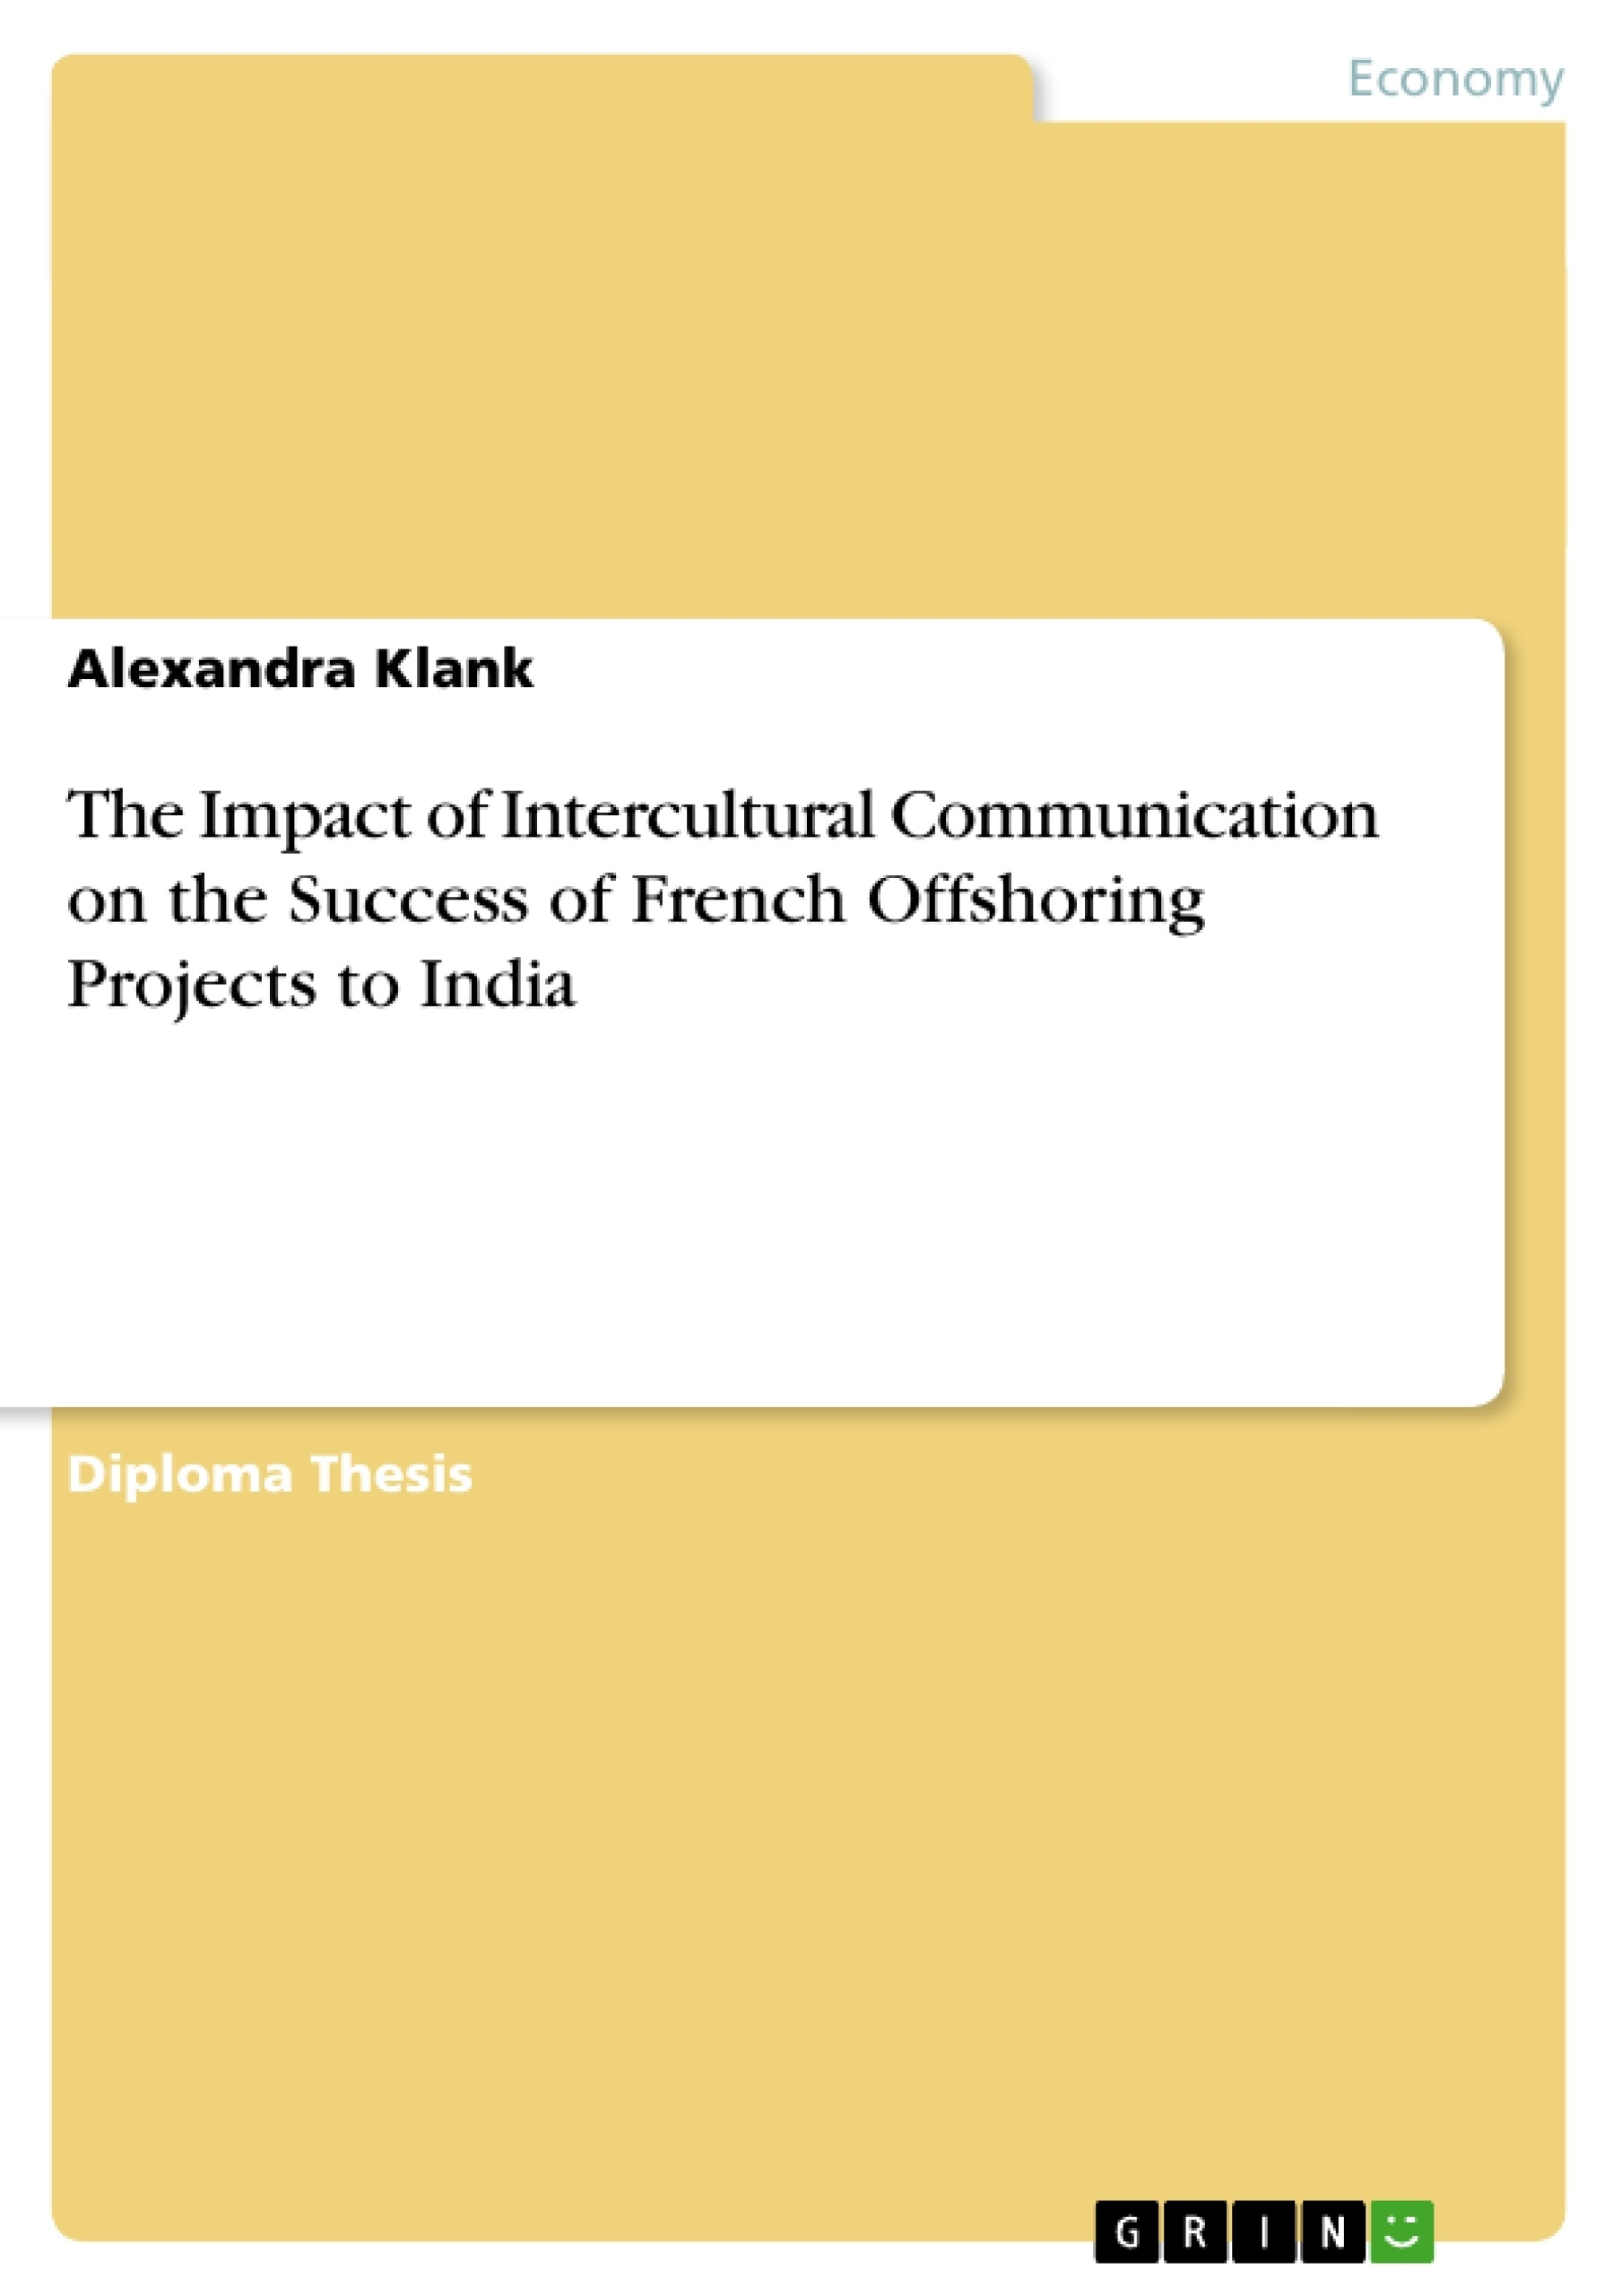 Title: The Impact of  Intercultural Communication on the Success of French Offshoring Projects to India